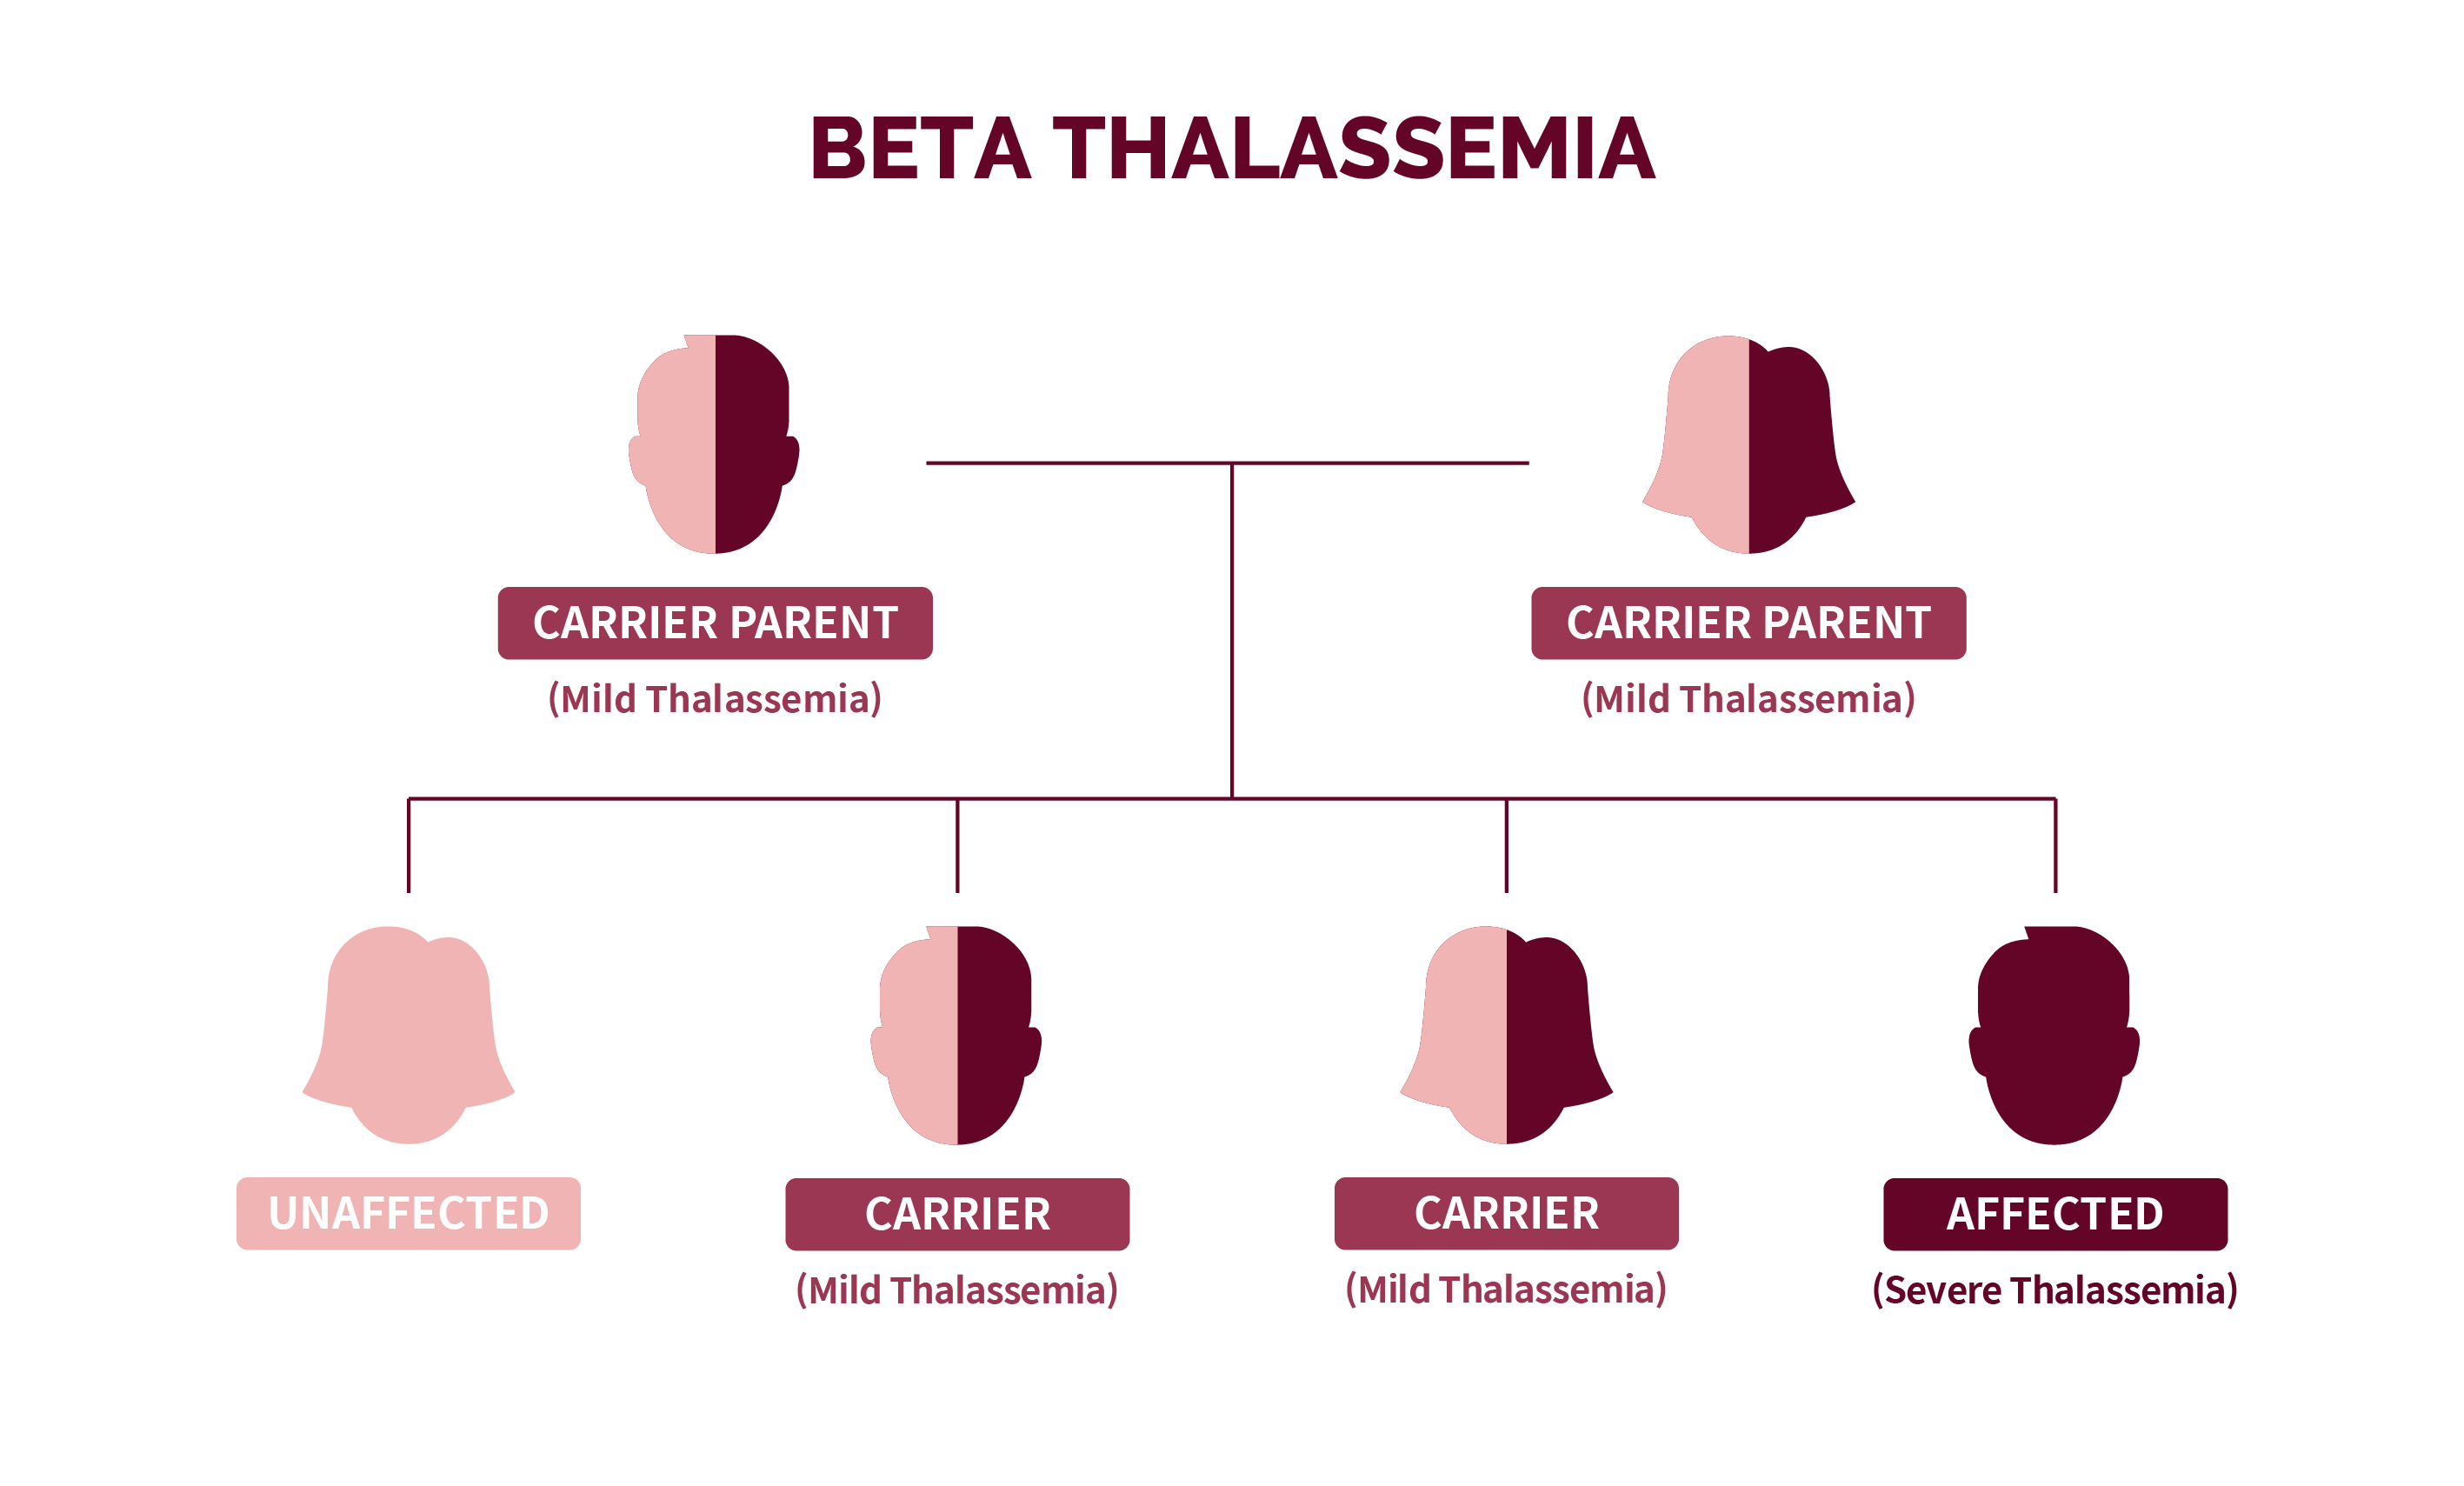 A family tree showing the autosomal recessive inheritance pattern of Beta thalassemia